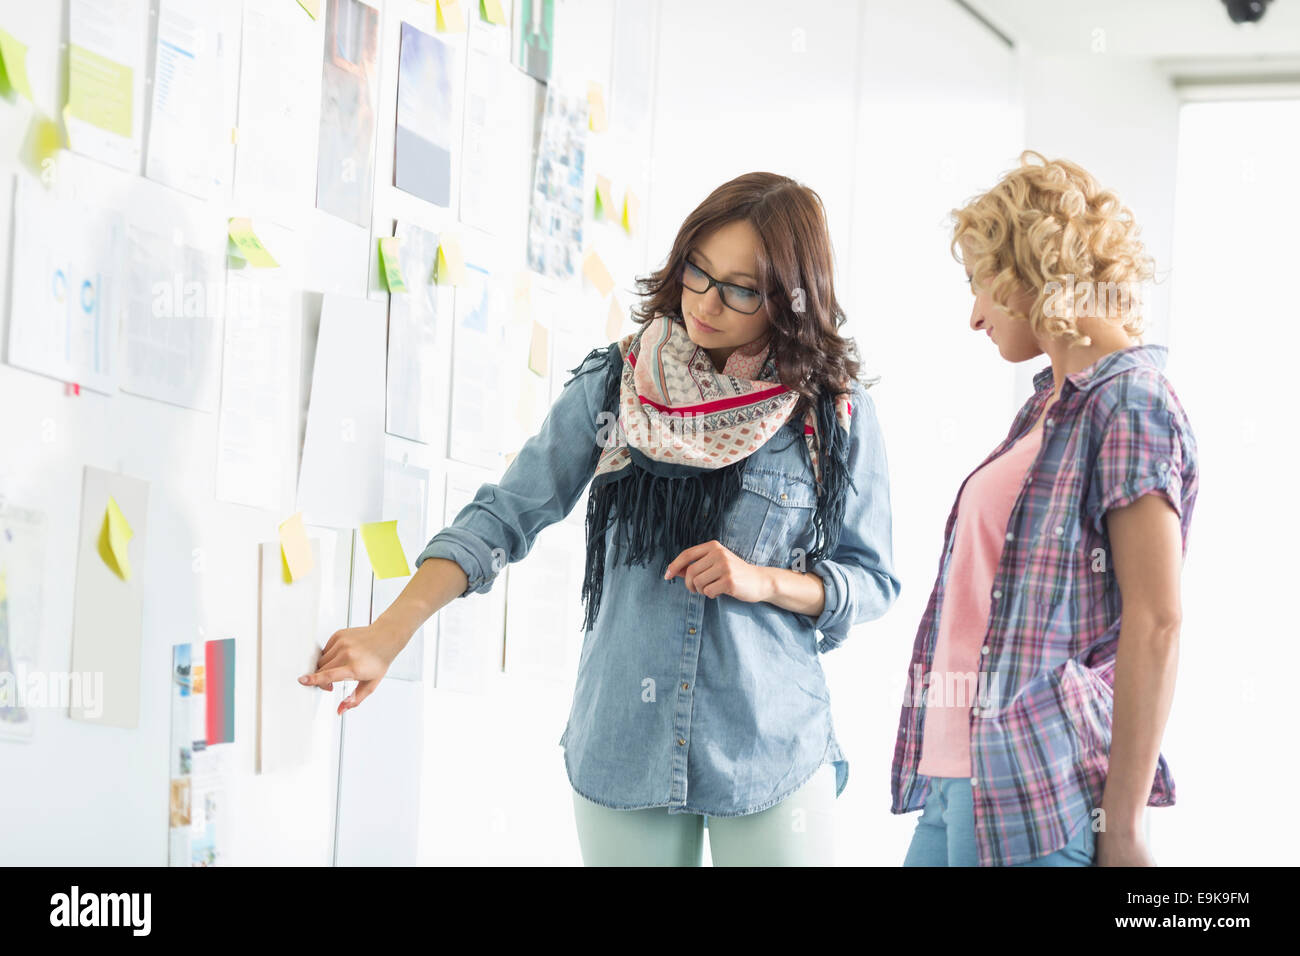 Businesswomen discussing over papers stuck on wall in creative office - Stock Image